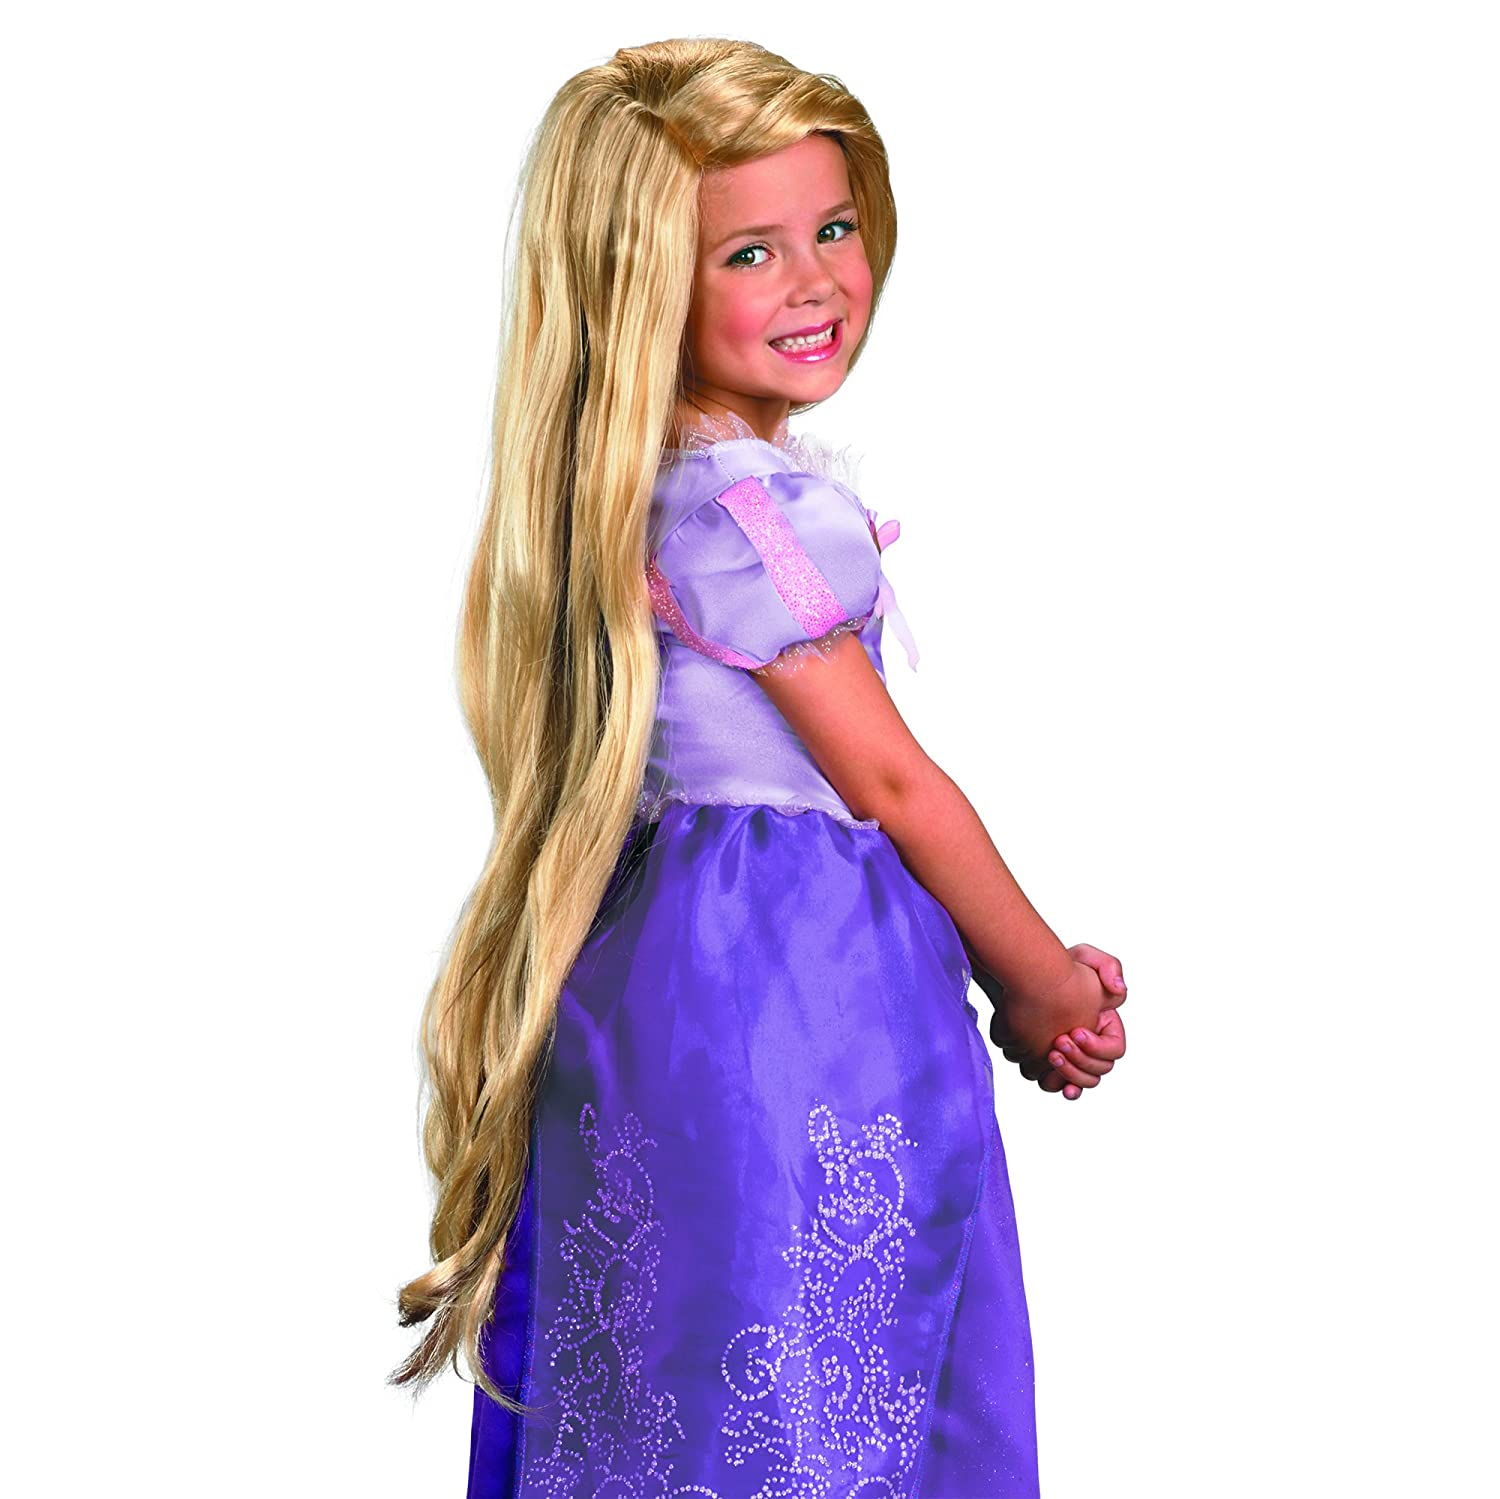 a260fc8eba8 Amazon.com  Tangled Rapunzel Wig  Toys   Games